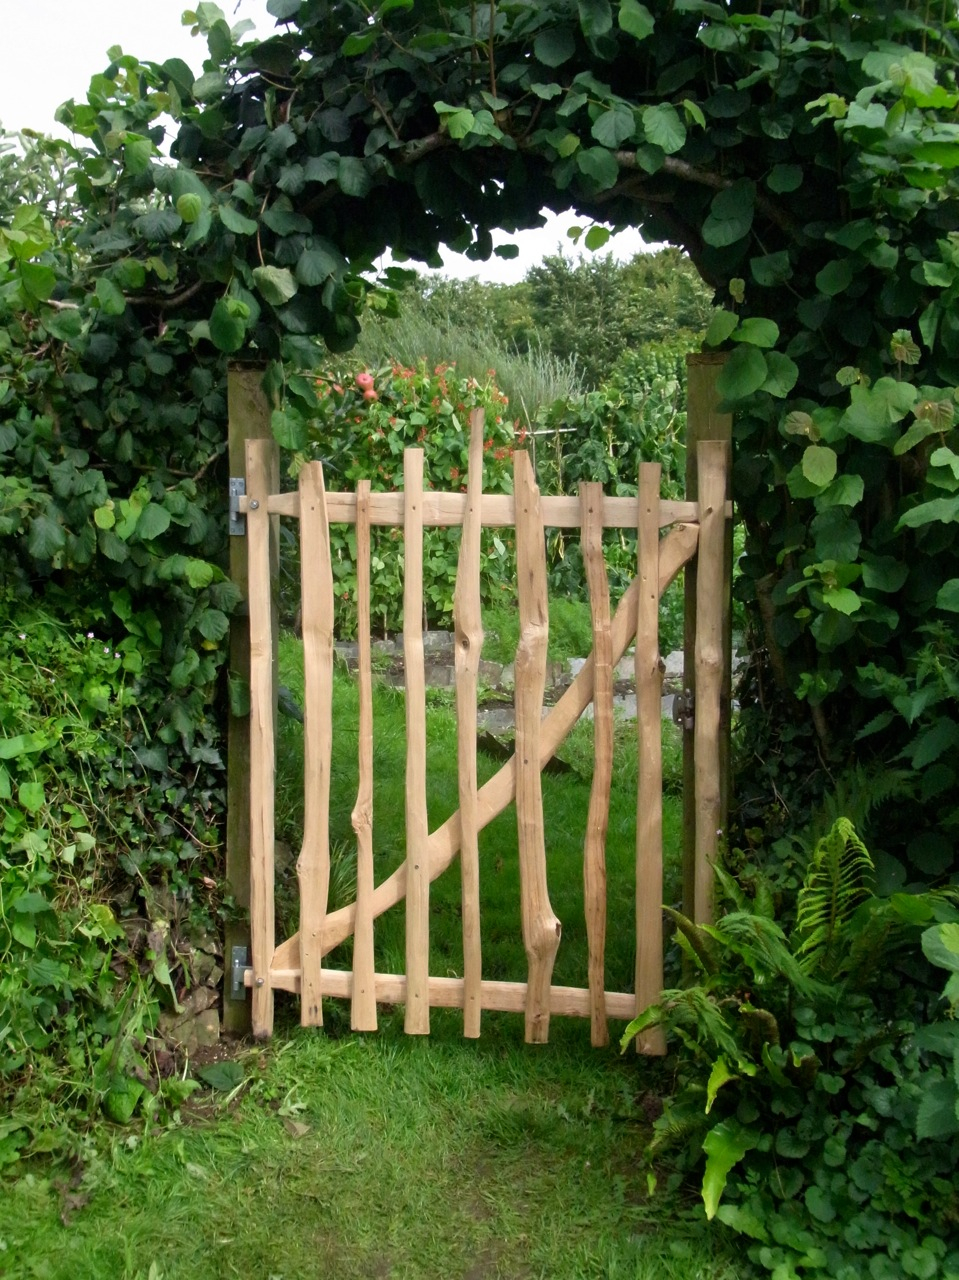 Ive been working on some more cleft chestnut gates, here is one to my Dad's garden